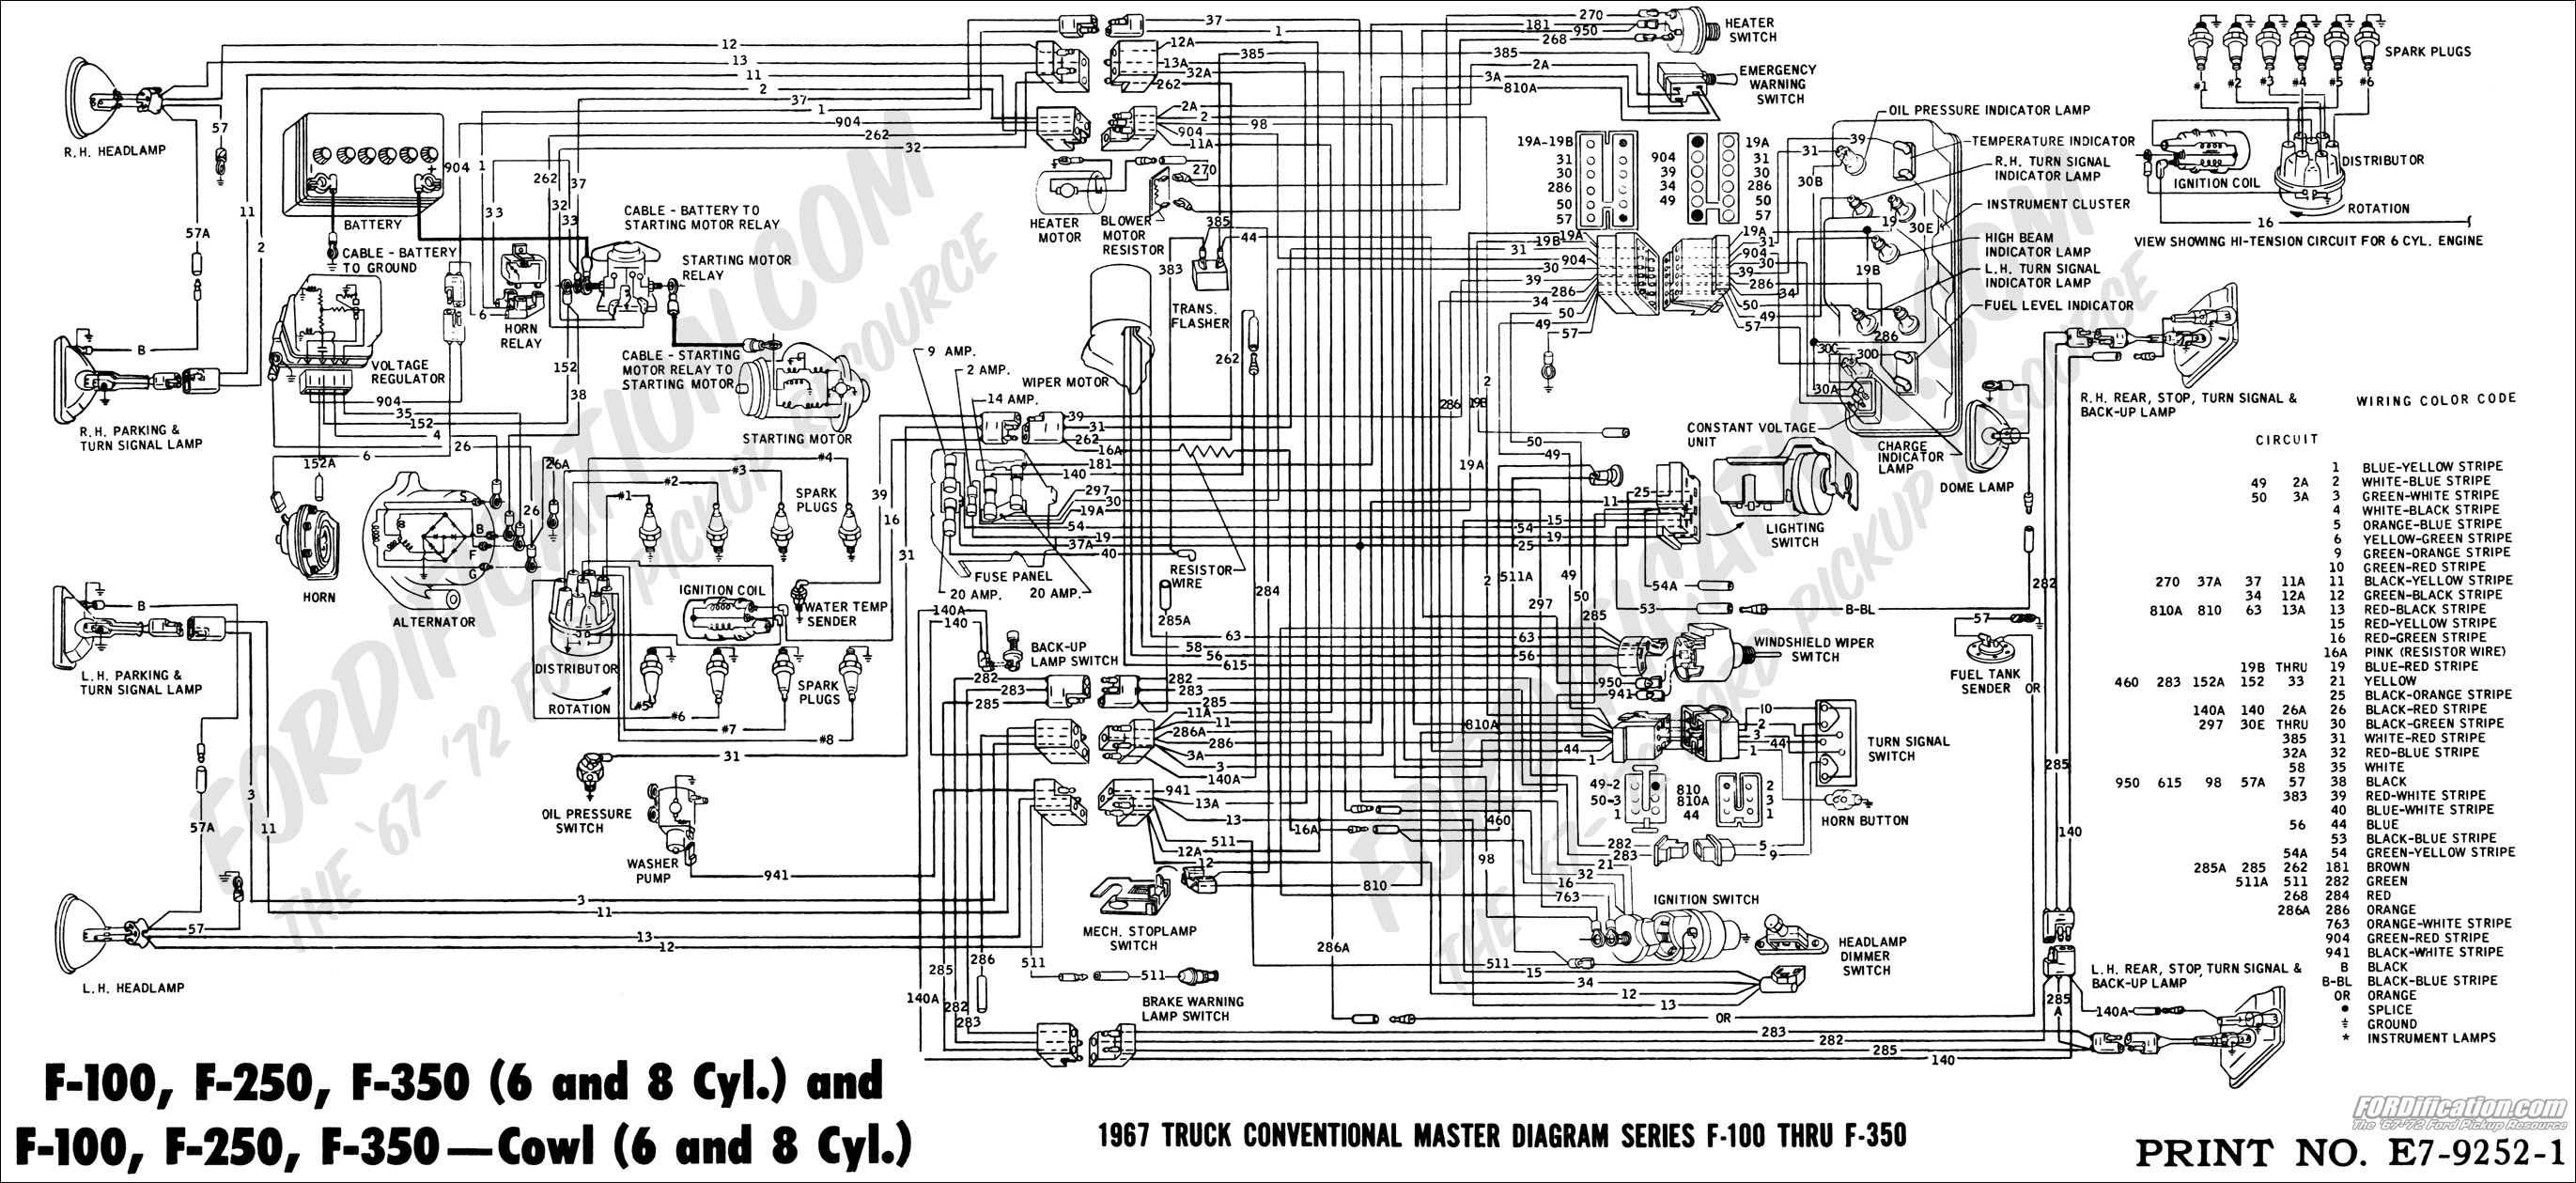 ford 1967 truck wiring diagram | wiring diagram 1967 ford f100 wiring diagram  wiring diagram - autoscout24